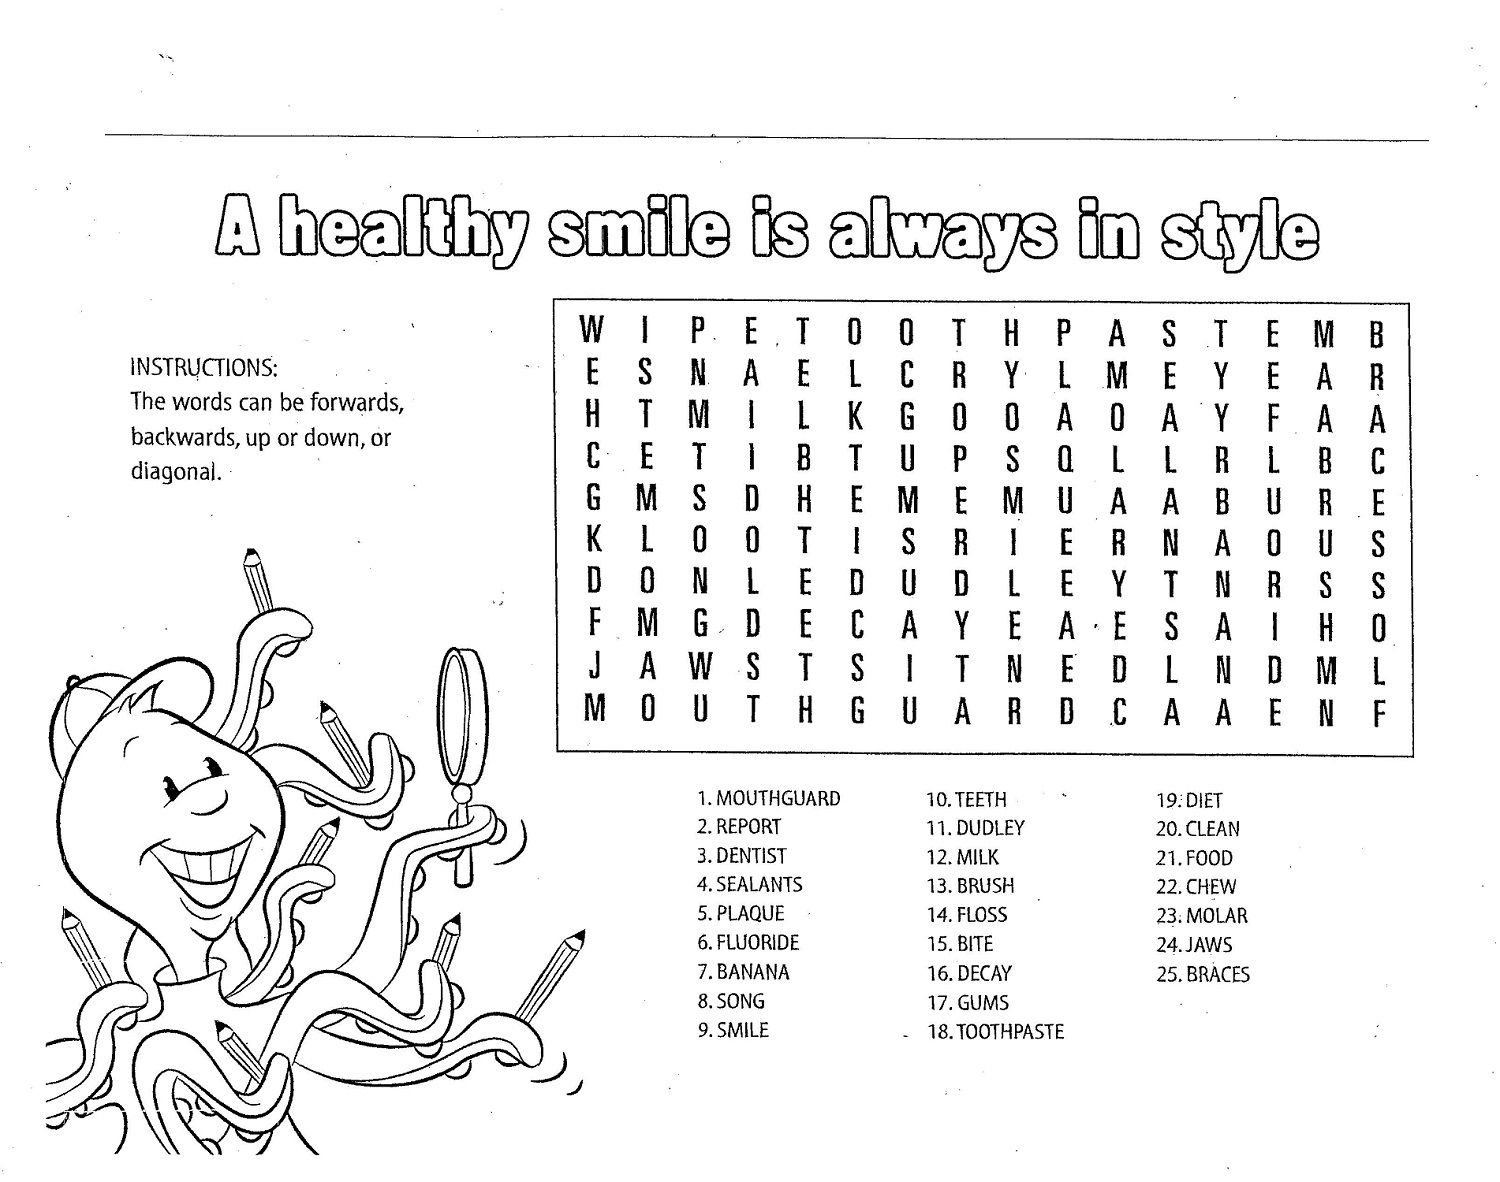 medium resolution of Children's Fun Activity Sheets Healthy Smile Word Search   Educative  Printable   Fun worksheets for kids